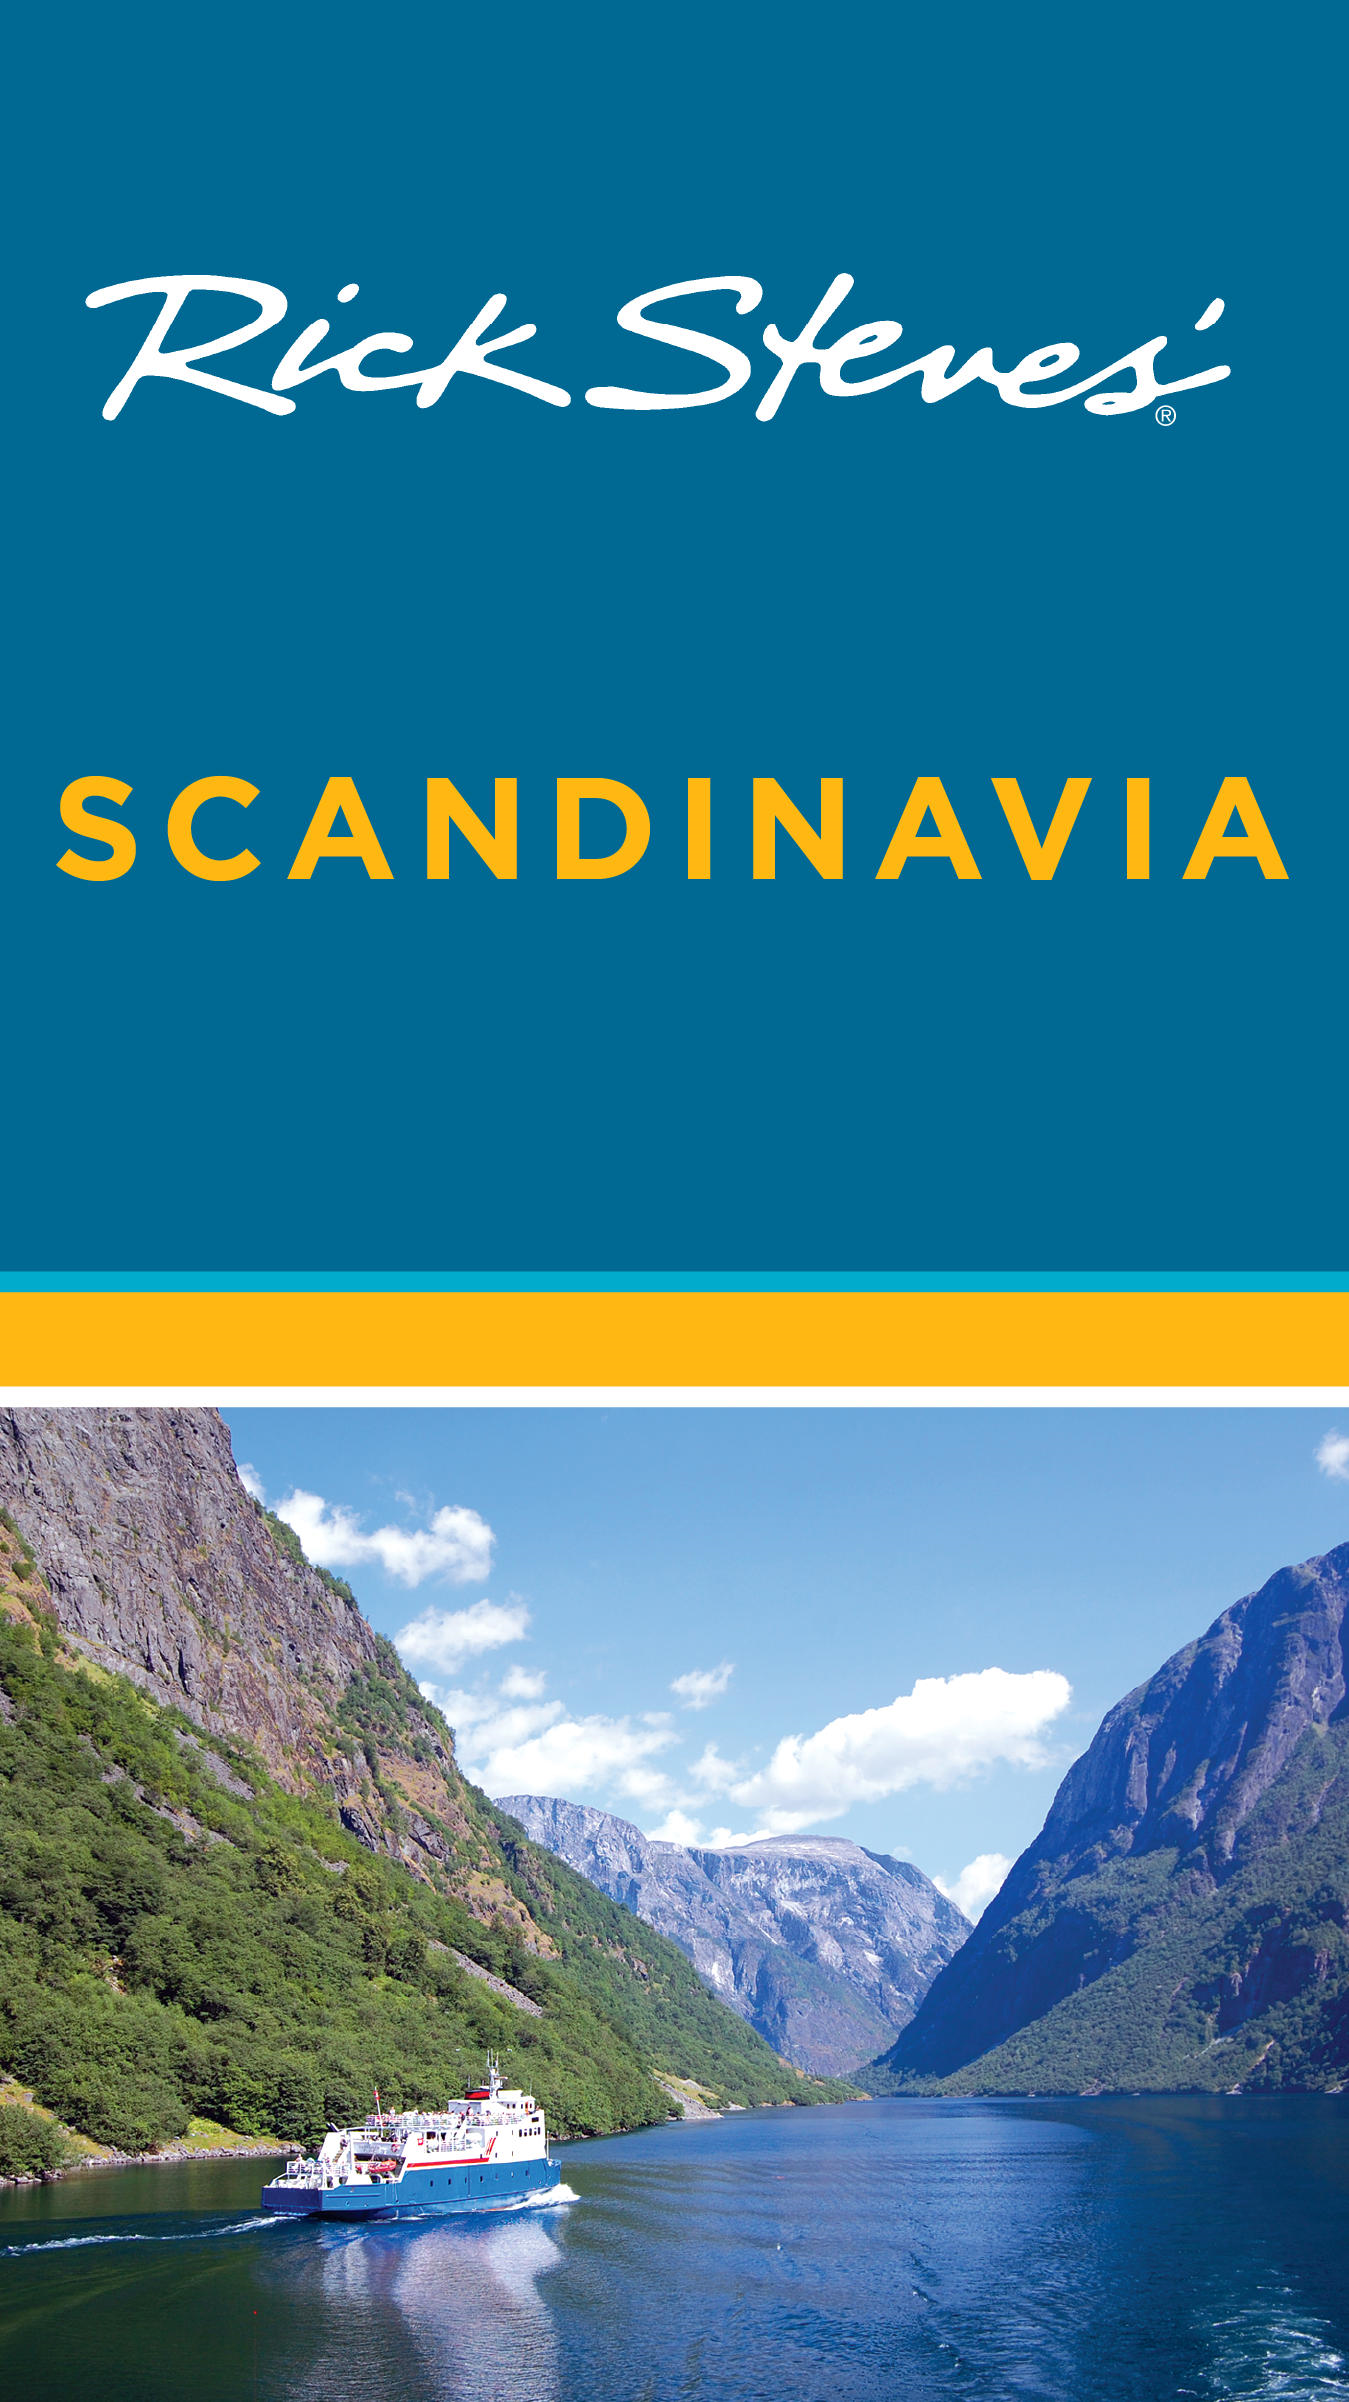 Rick Steves' Scandinavia By: Rick Steves